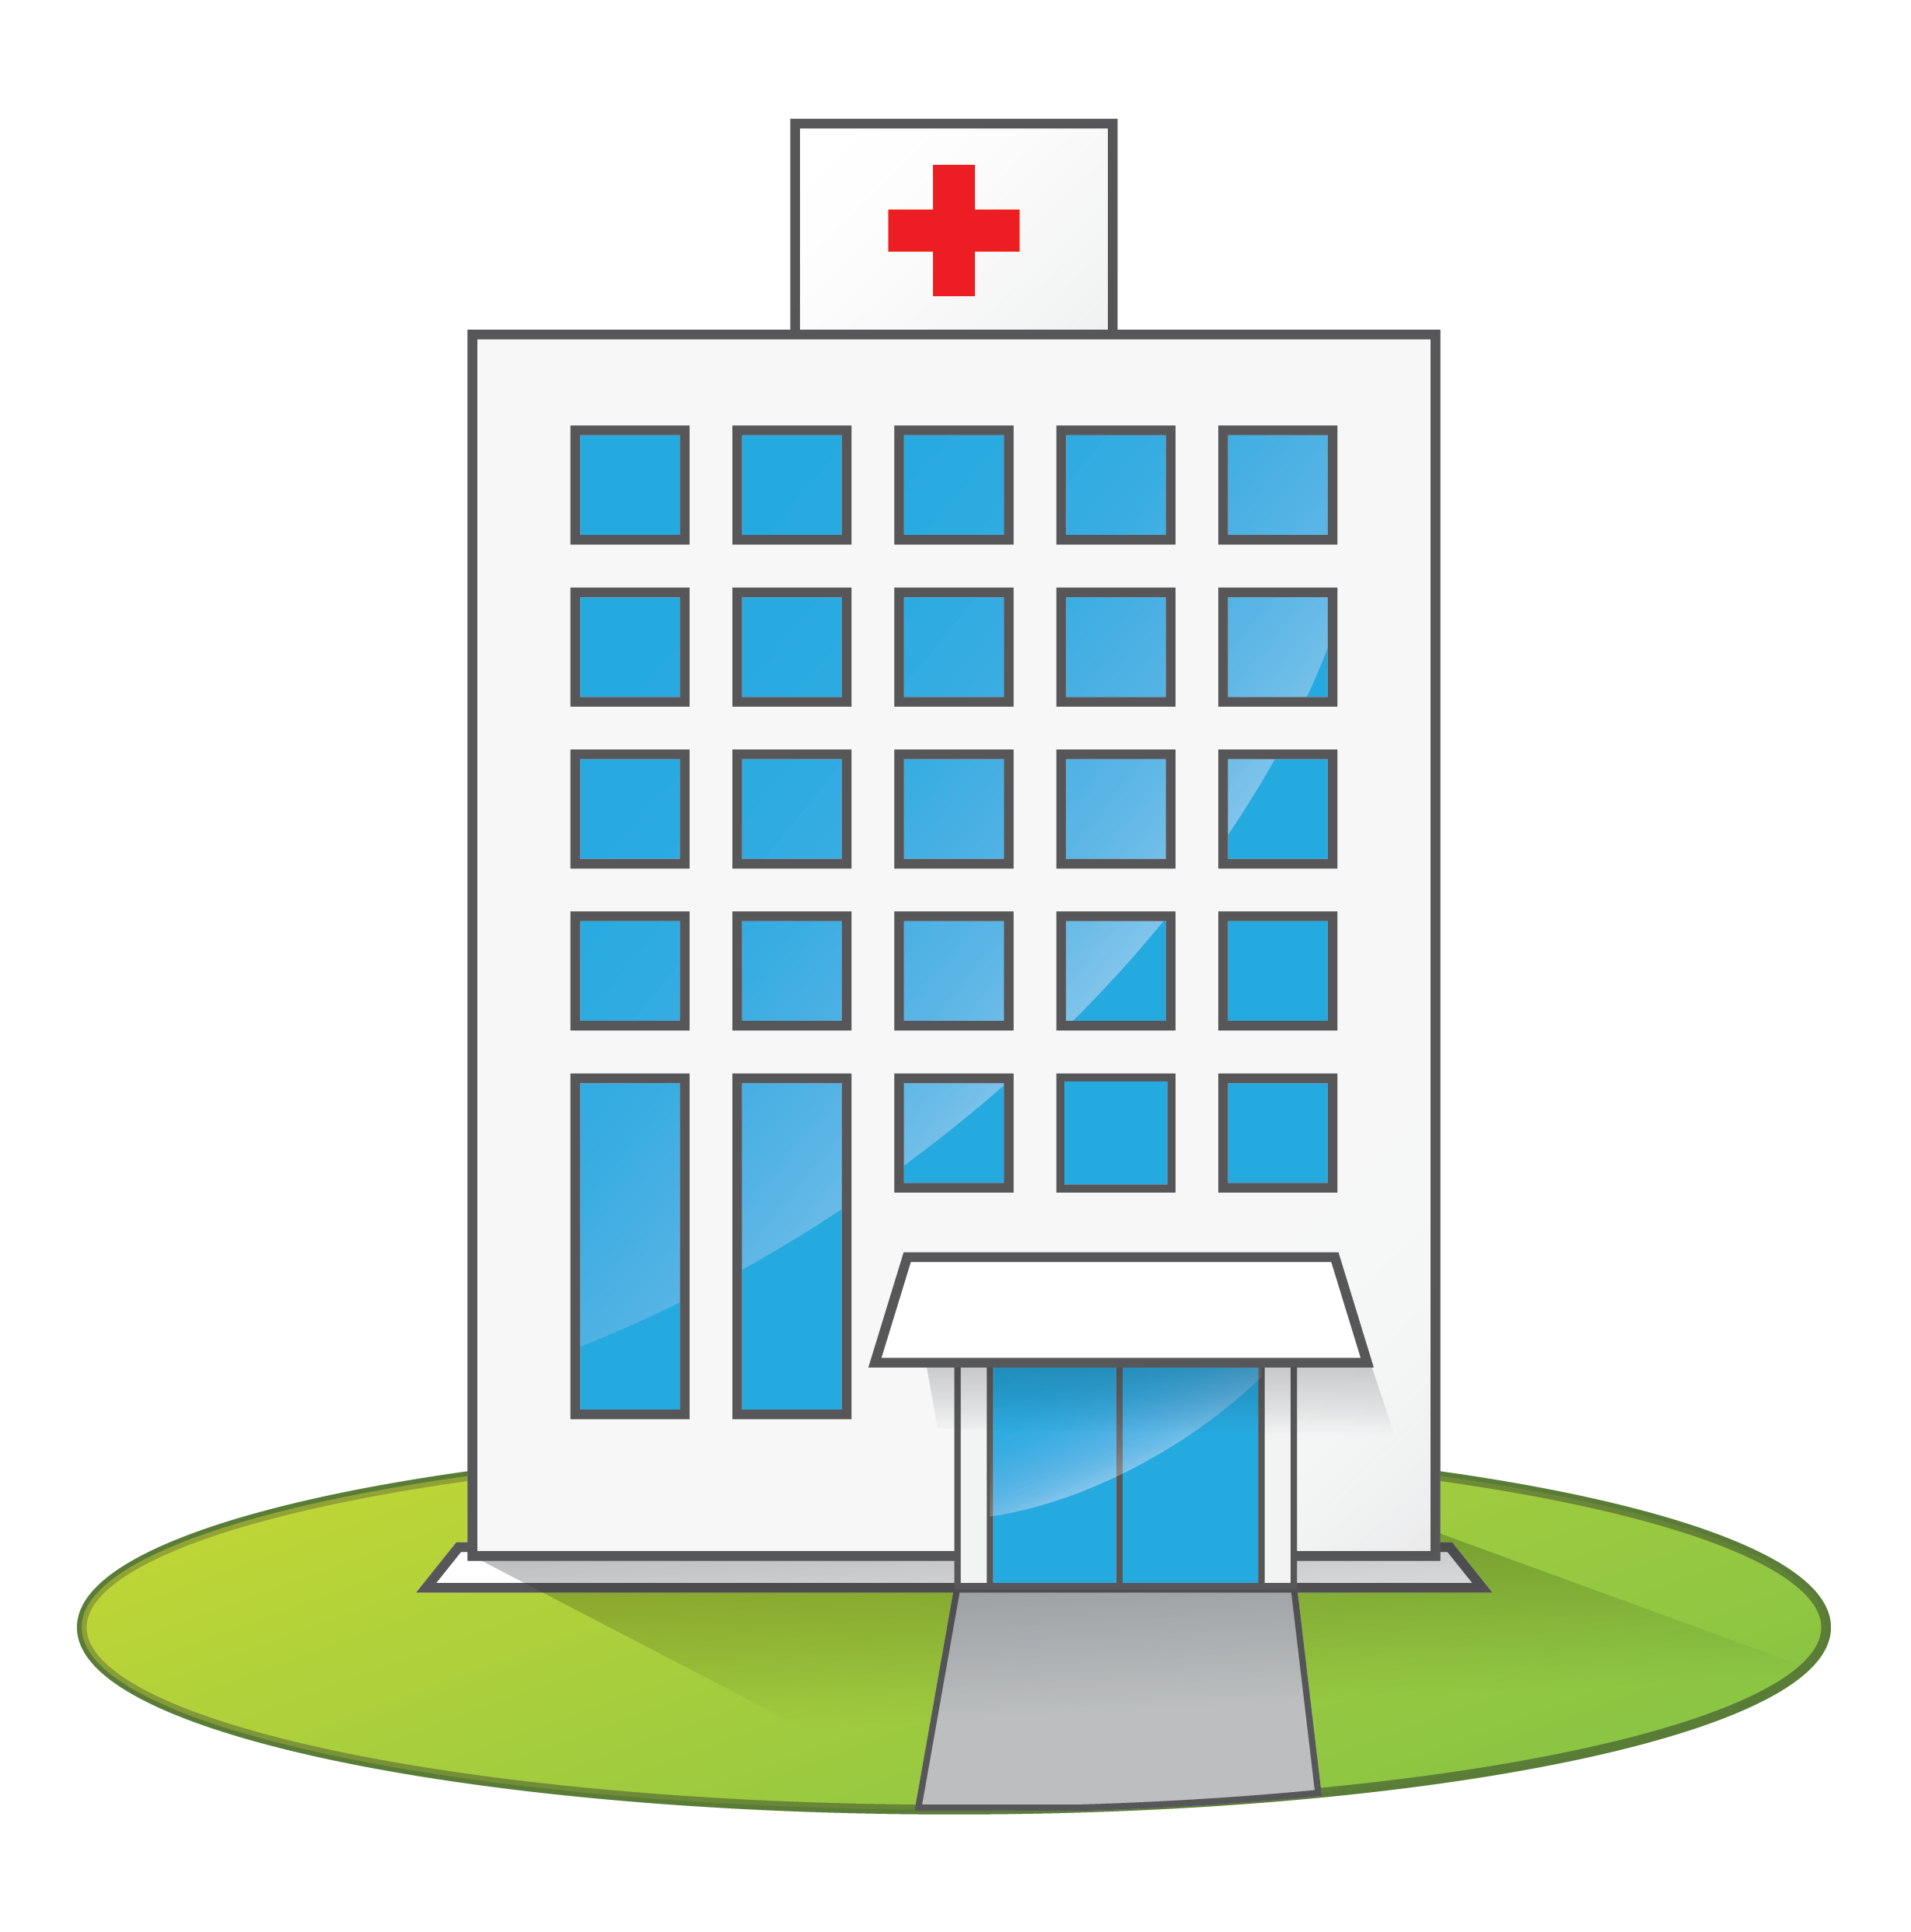 Hospital images free clipart png library library Free Hospital Cliparts, Download Free Clip Art, Free Clip Art on ... png library library